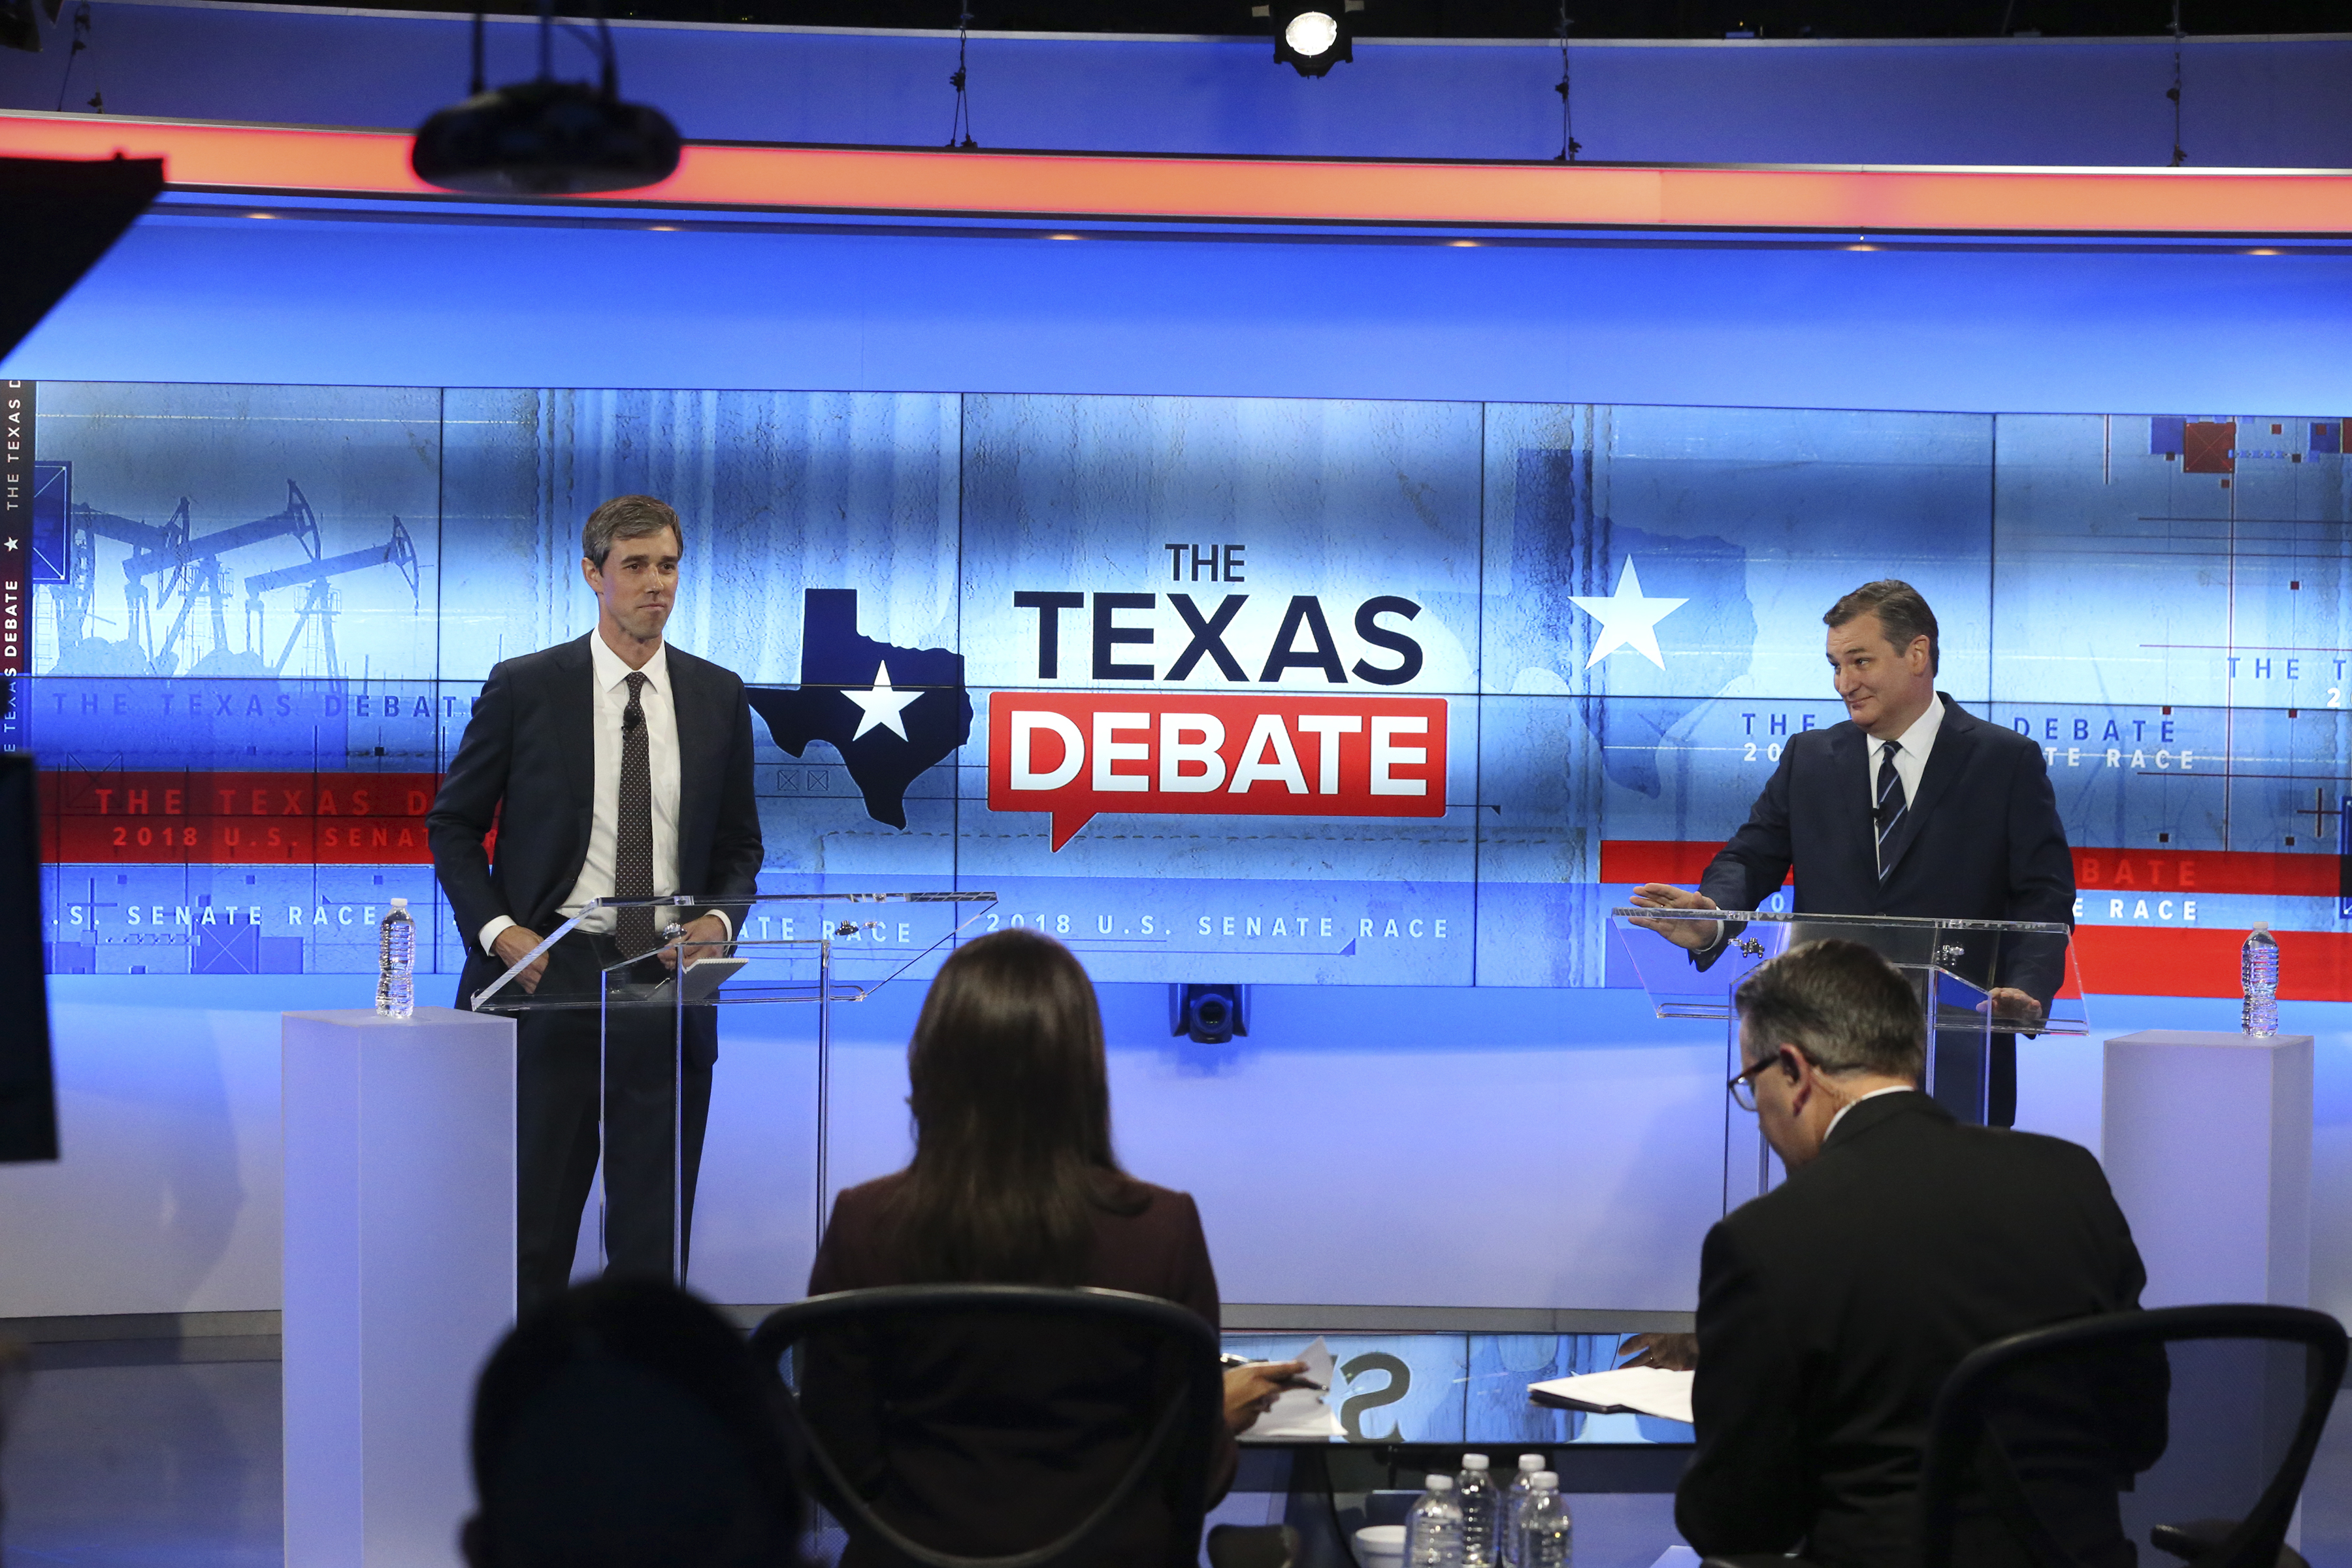 U.S. Rep. Beto O'Rourke (D-TX) and U.S. Sen. Ted Cruz (R-TX) face off in a debate at the KENS 5 studios on October 16, 2018 in San Antonio, Texas. A recent poll show Cruz leading O'Rourke 52-45 percent among likely voters. Tom Reel-Pool/Getty Images